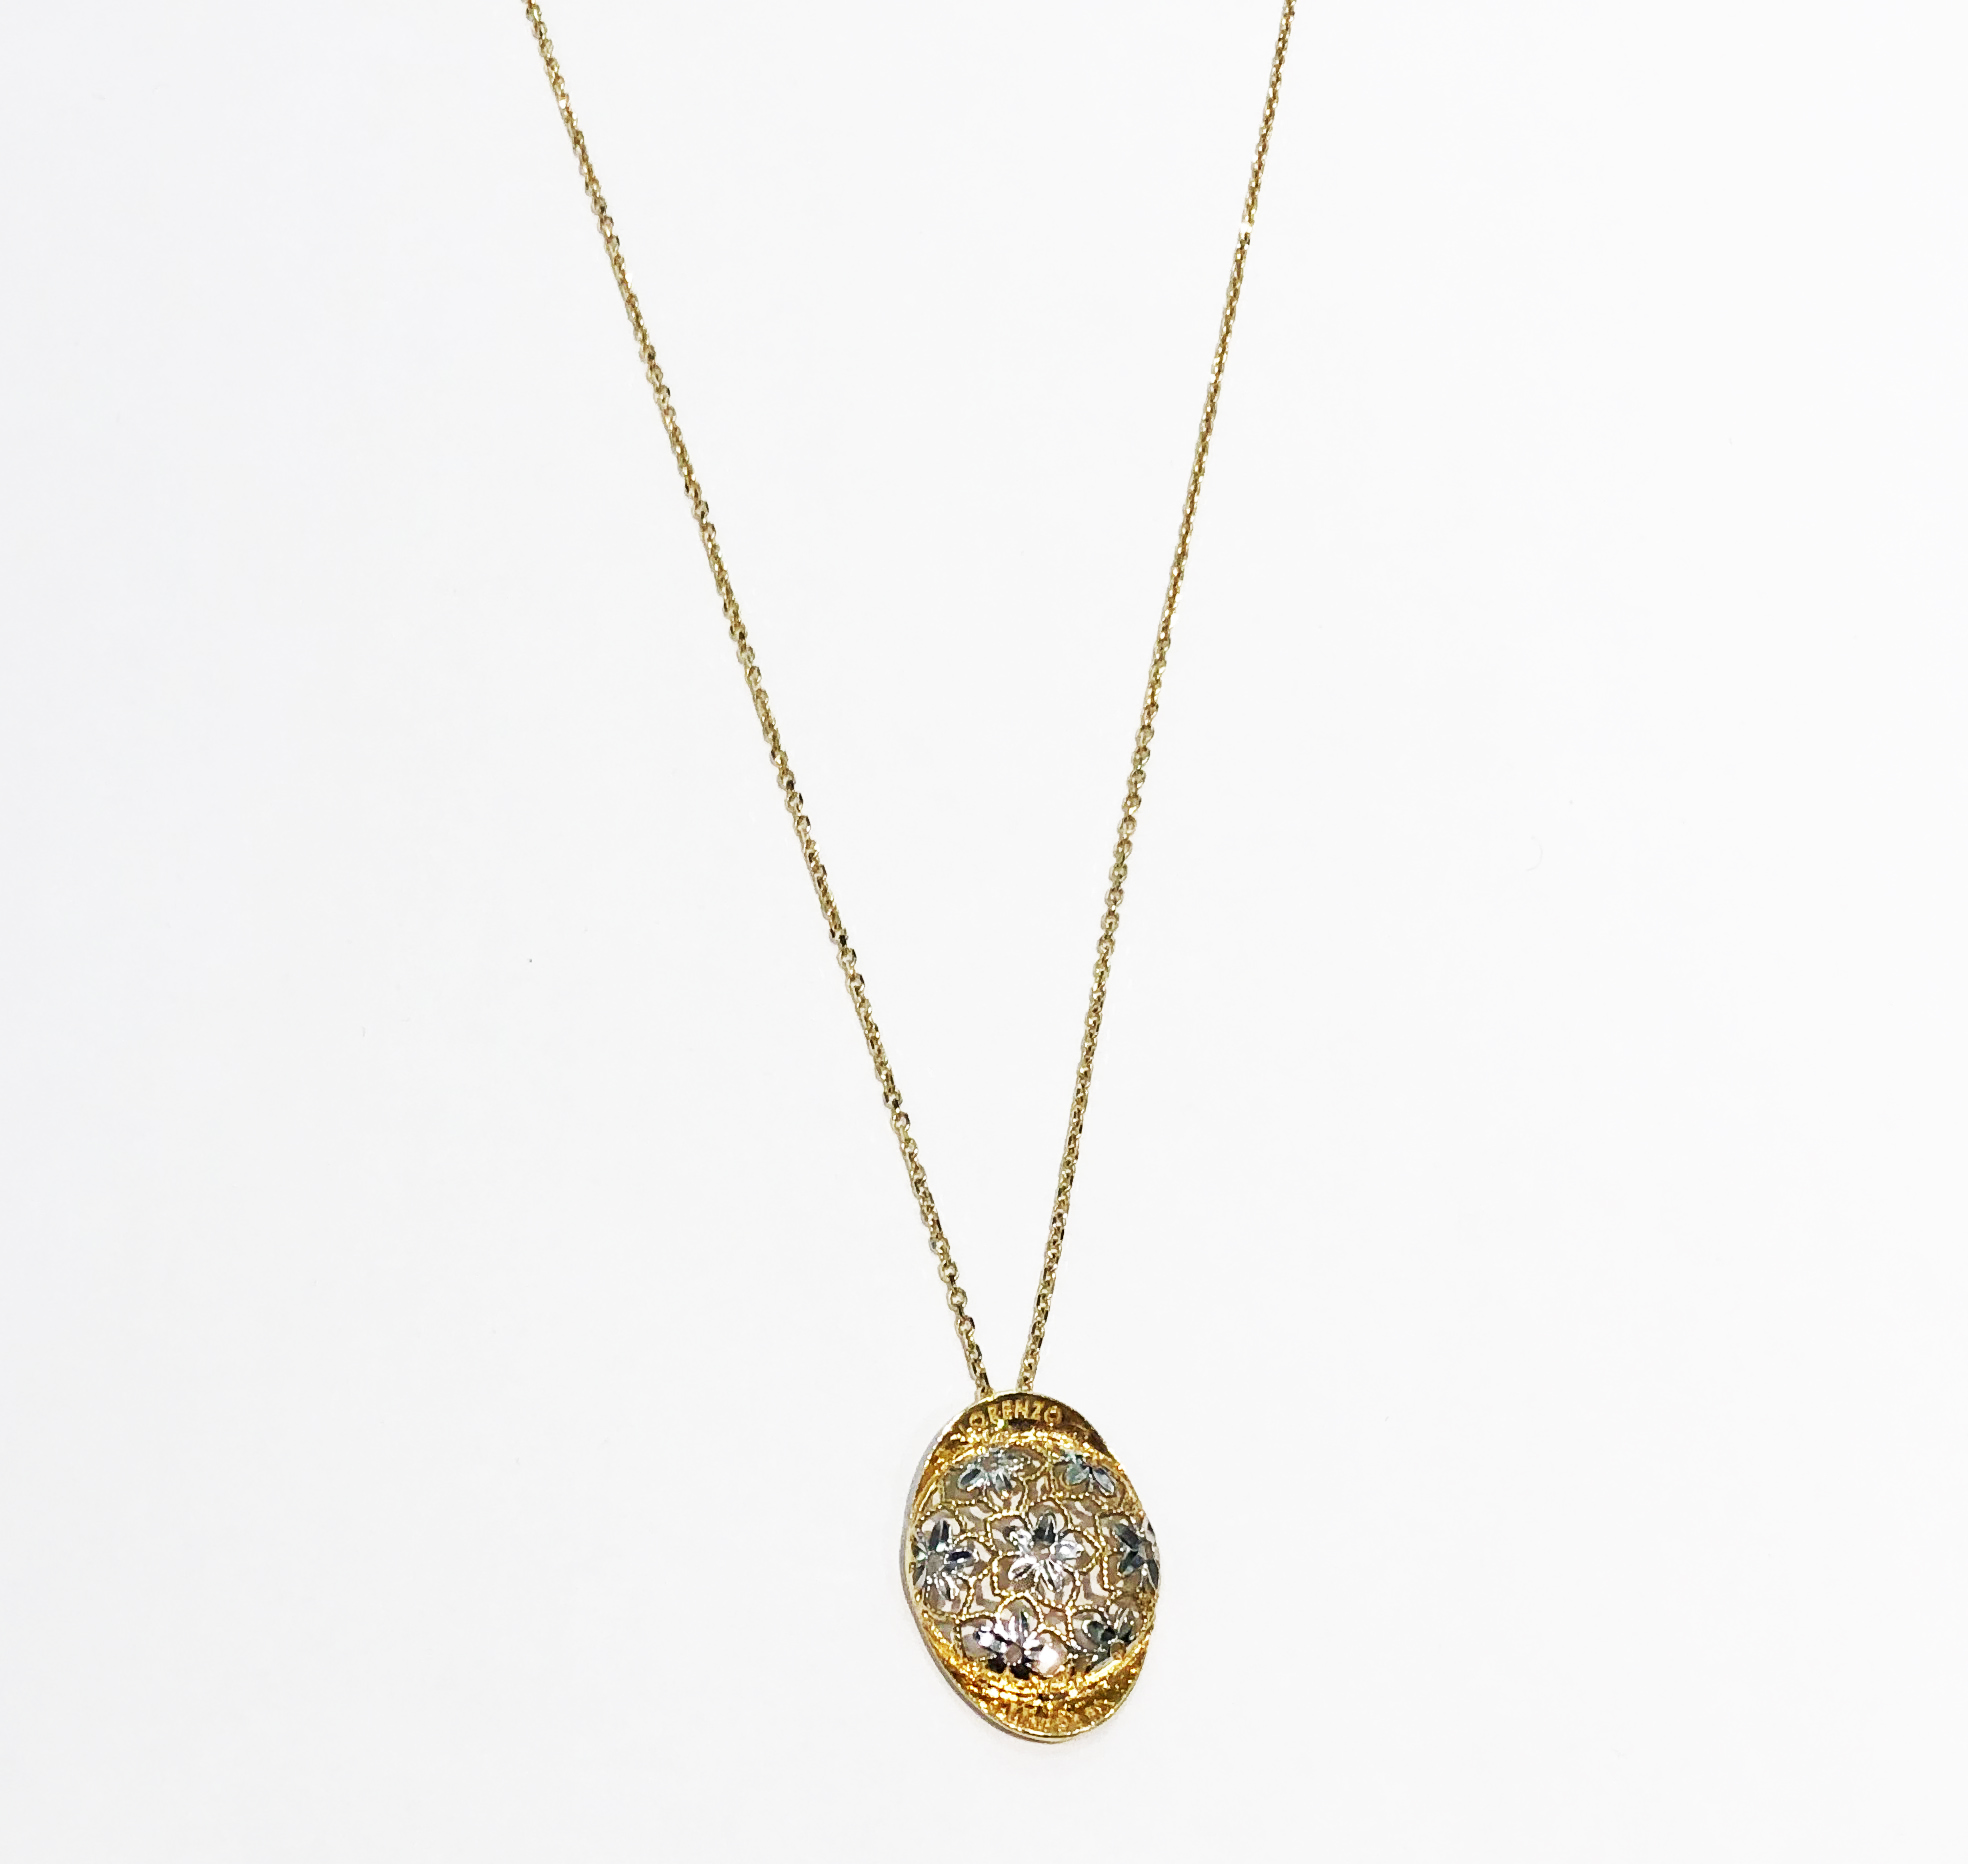 Lorenzo Ungari NECKLACE YELLOW GOLD, CL S 0257